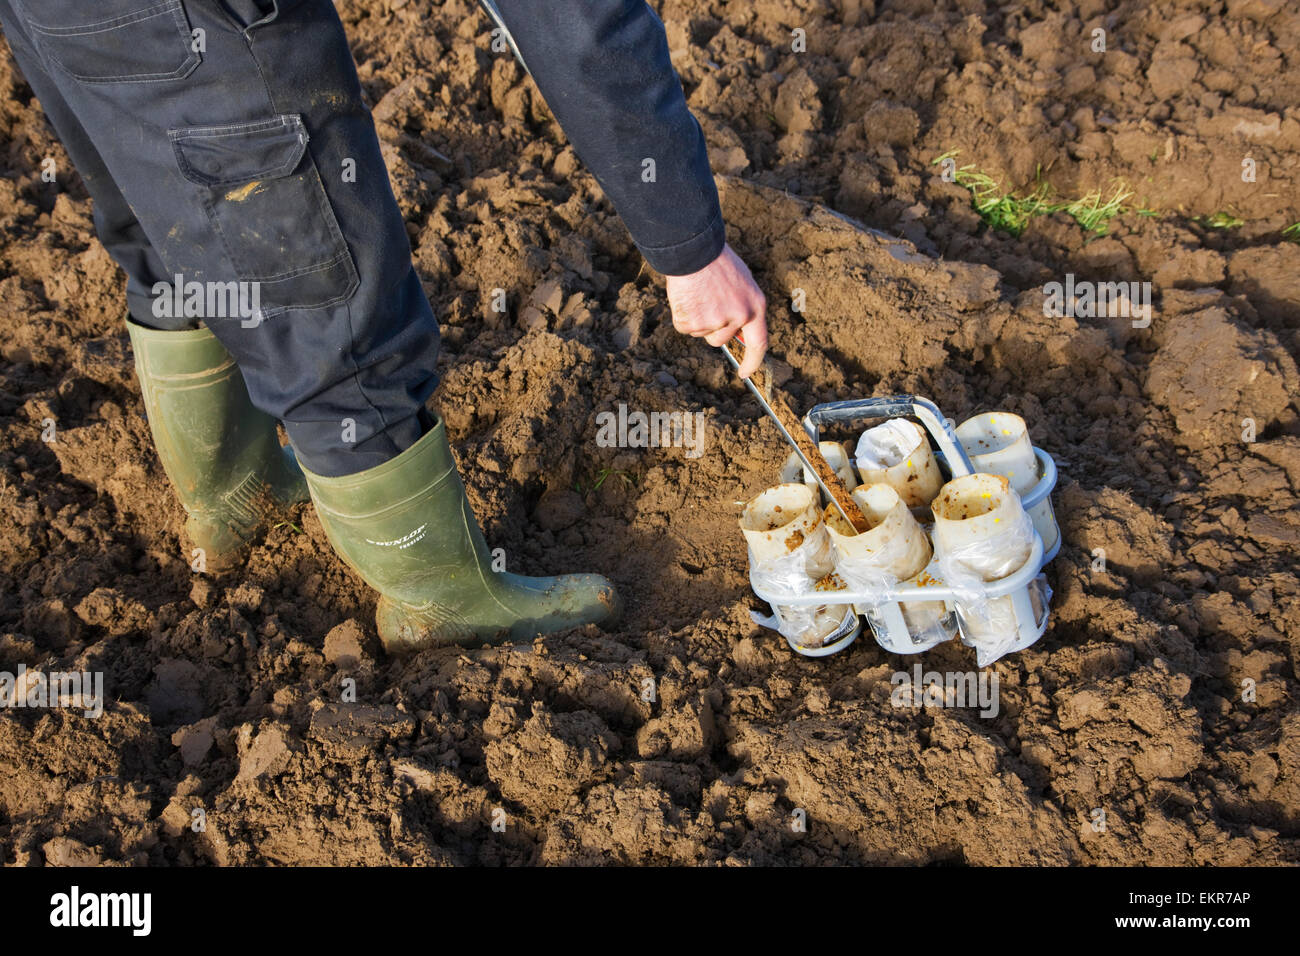 Researcher carrying out soil test by taking manual earth core samples from field with metal corer - Stock Image